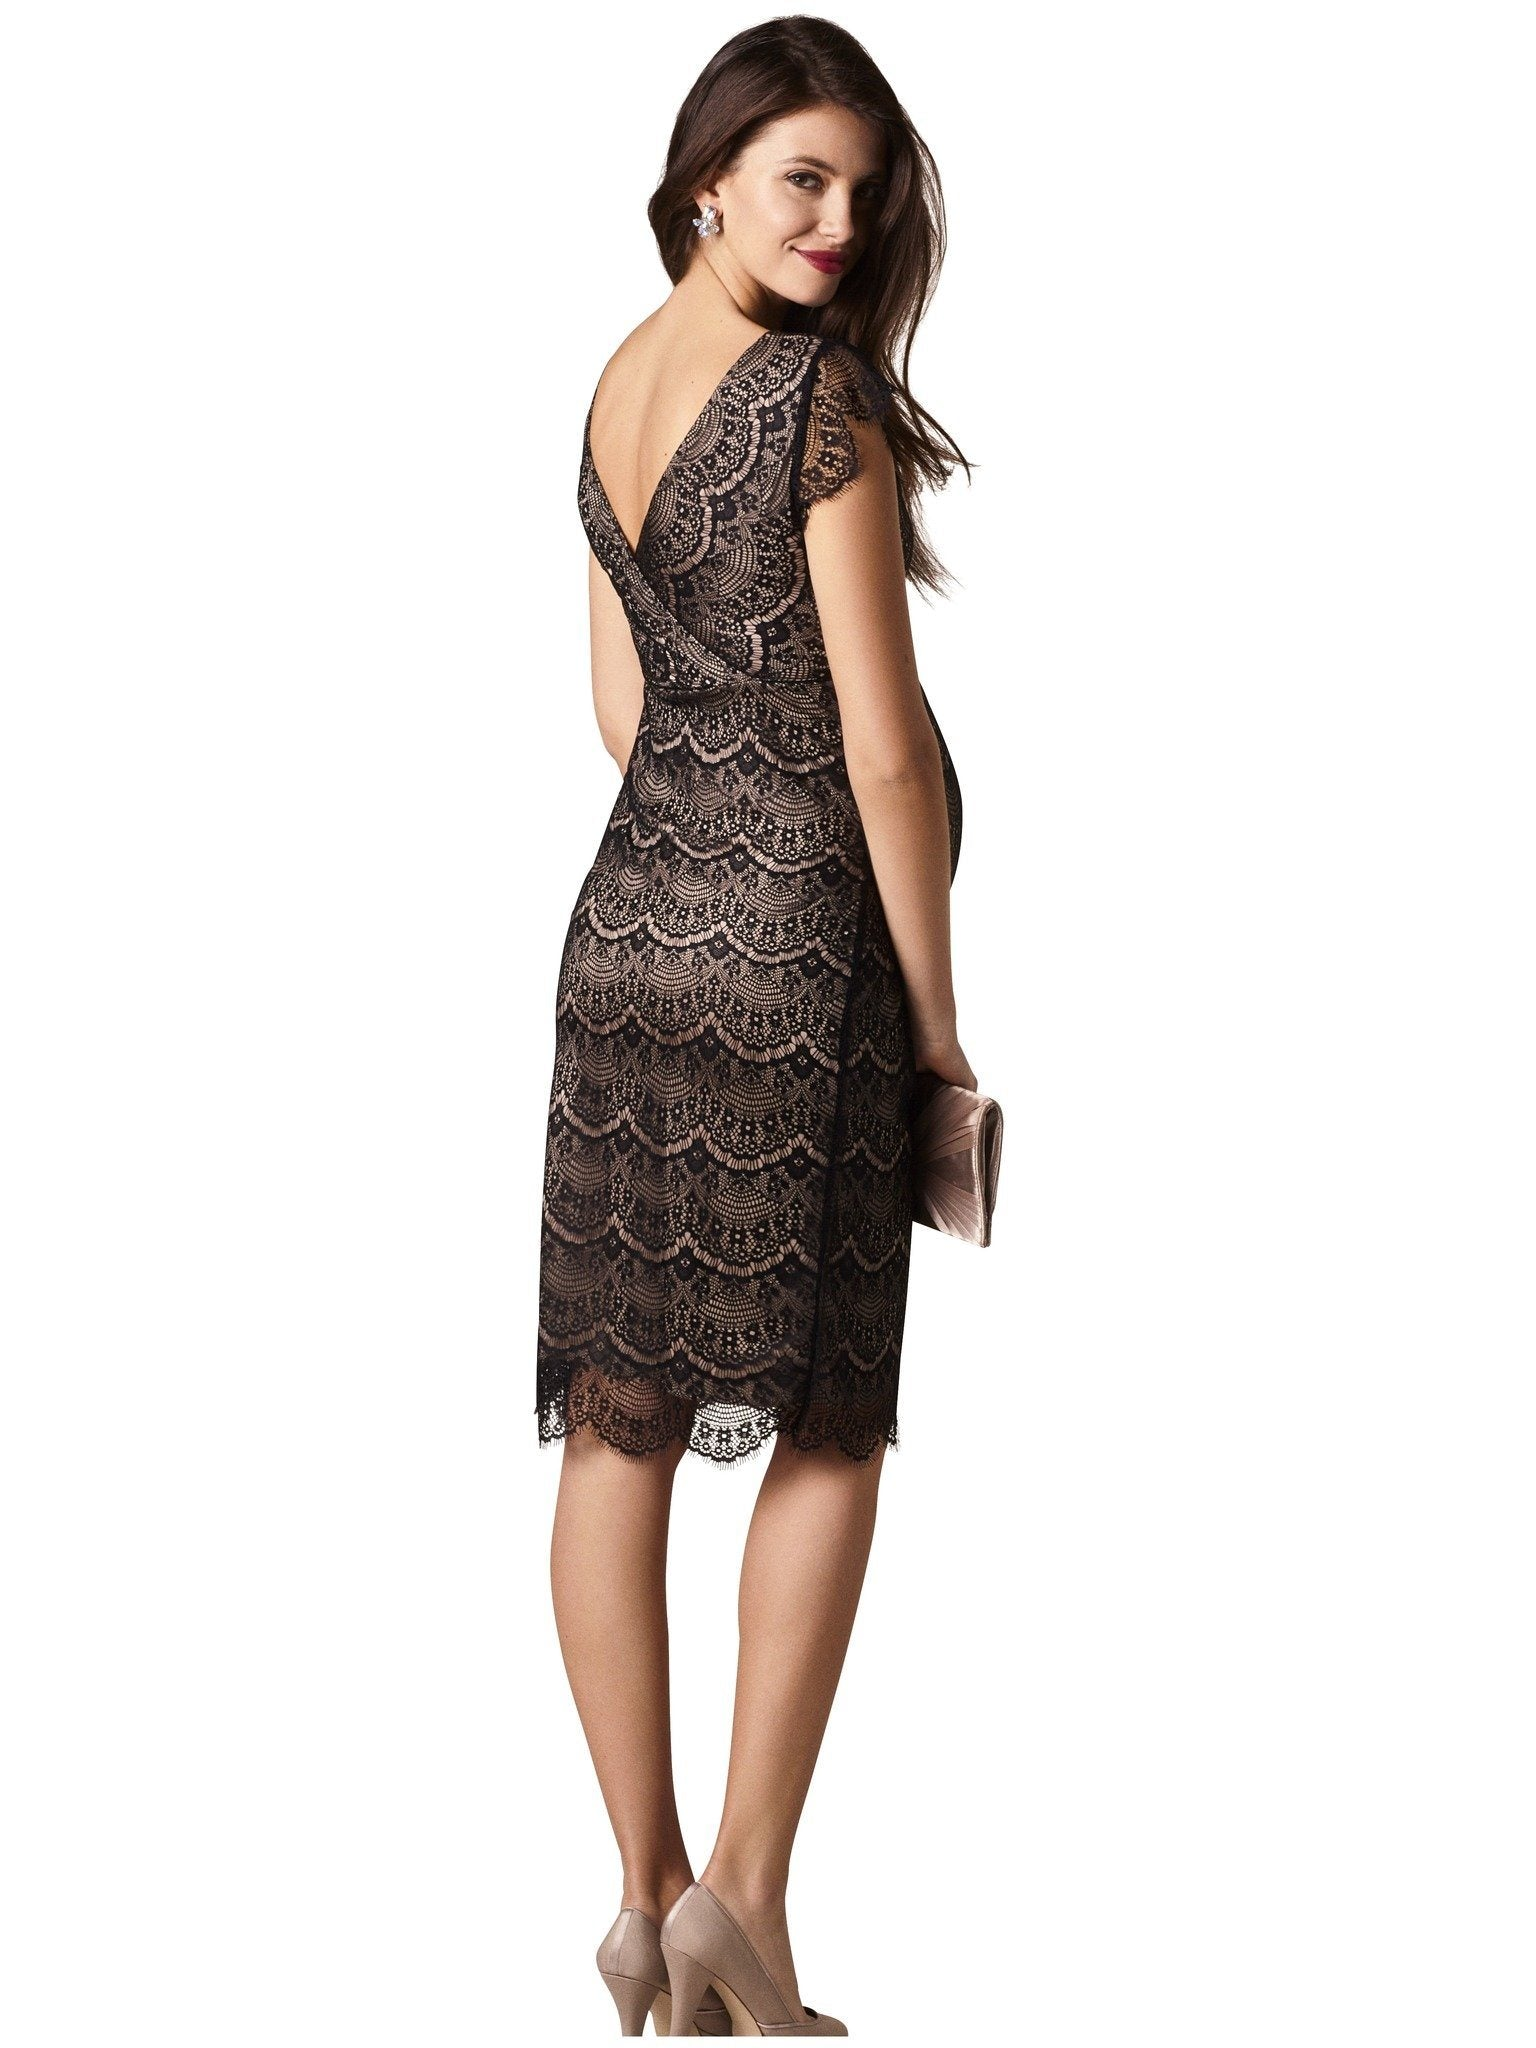 Imogen lace dress moms the word black lace maternity nursing dress ombrellifo Image collections